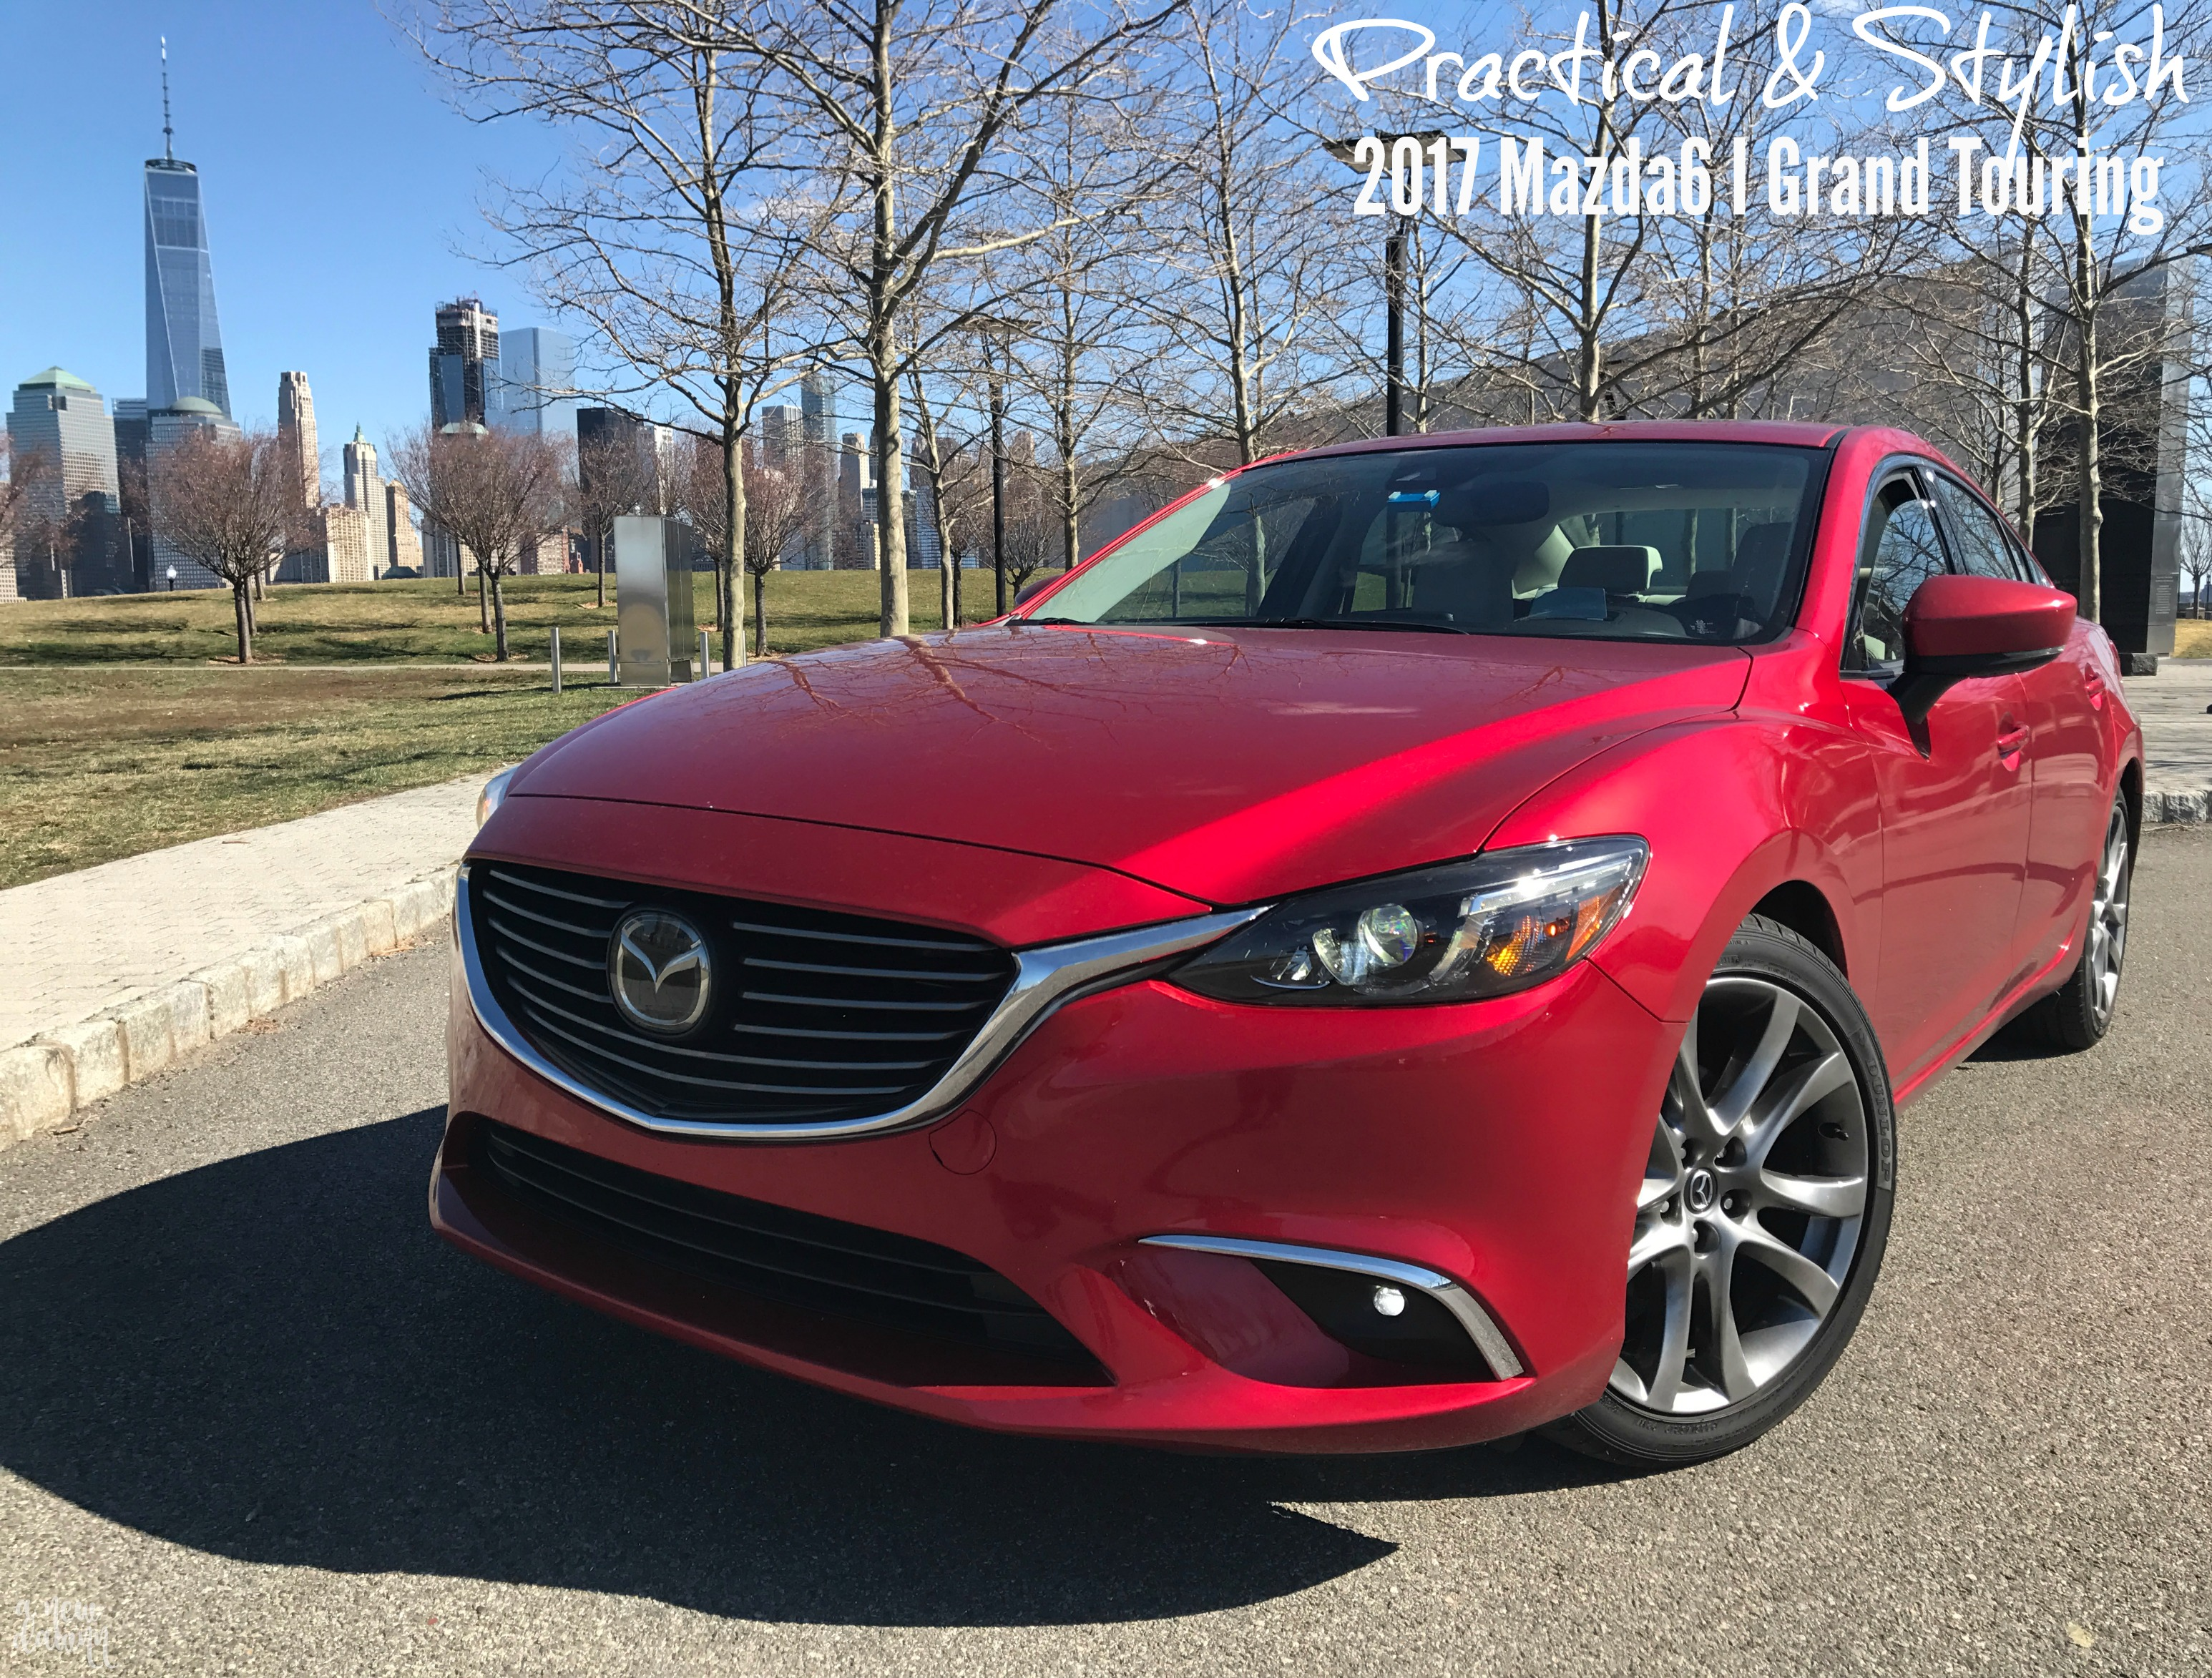 the 2017 mazda6 grand touring a practical stylish family sedan. Black Bedroom Furniture Sets. Home Design Ideas